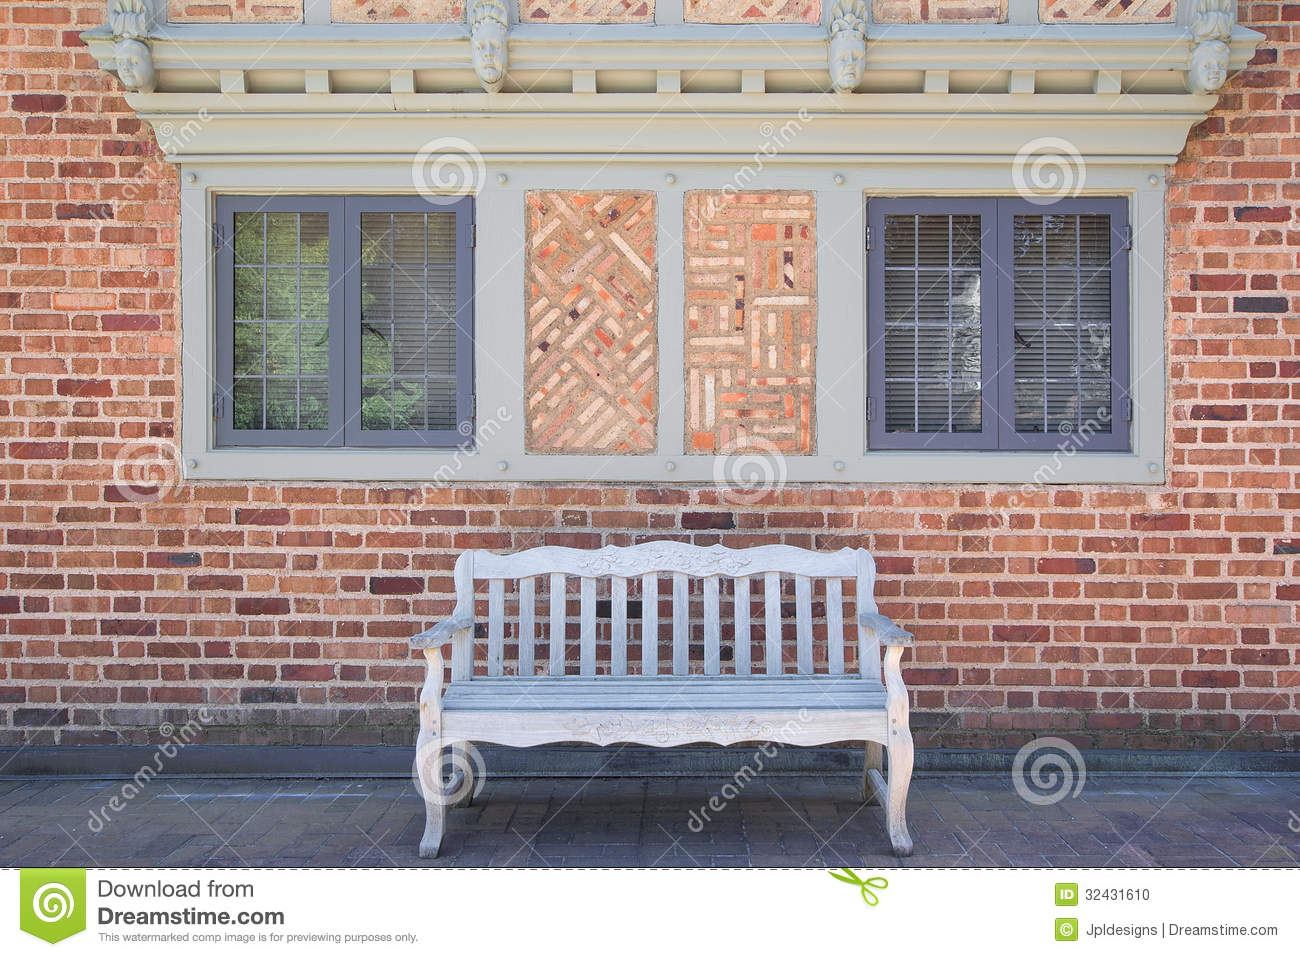 House brick exterior with wood bench stock photo image for Window frame designs house design